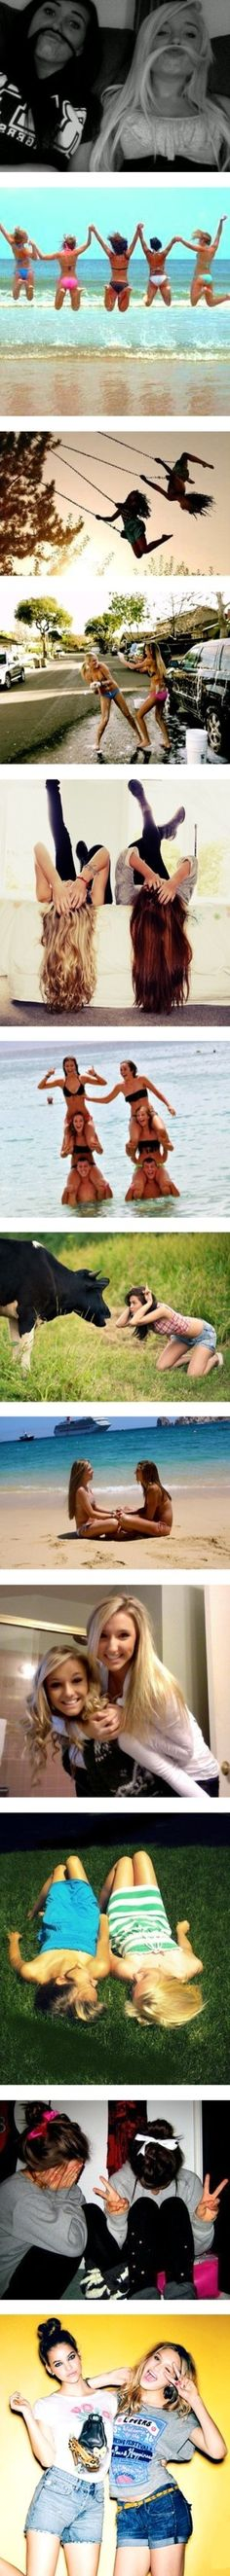 Best Friend poses! we could some of these this summer!!